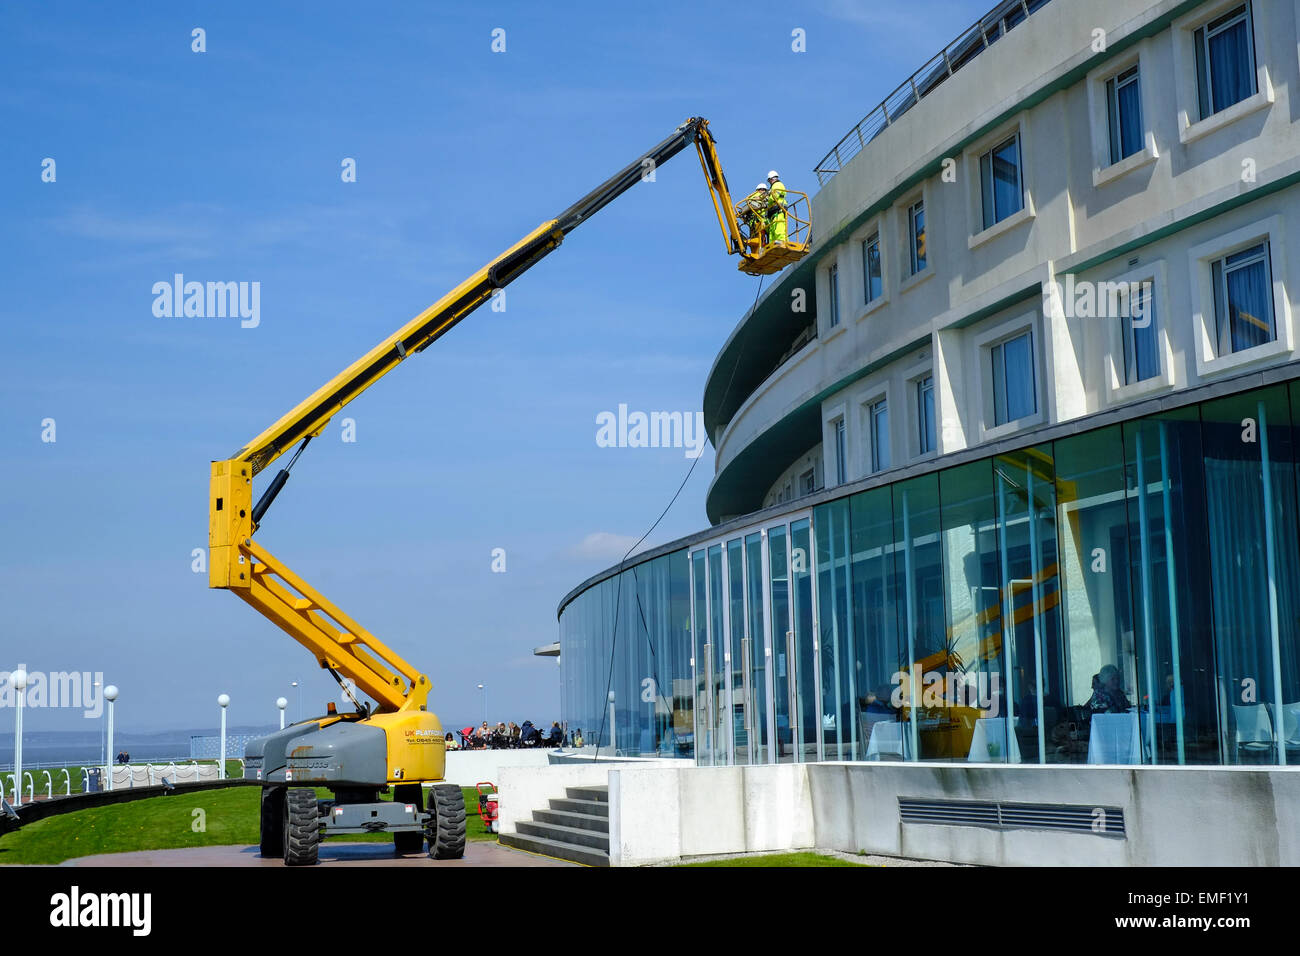 A specialist cleaning company power-washing the outside of The Midland Hotel in Morecambe, Lancashire - Stock Image